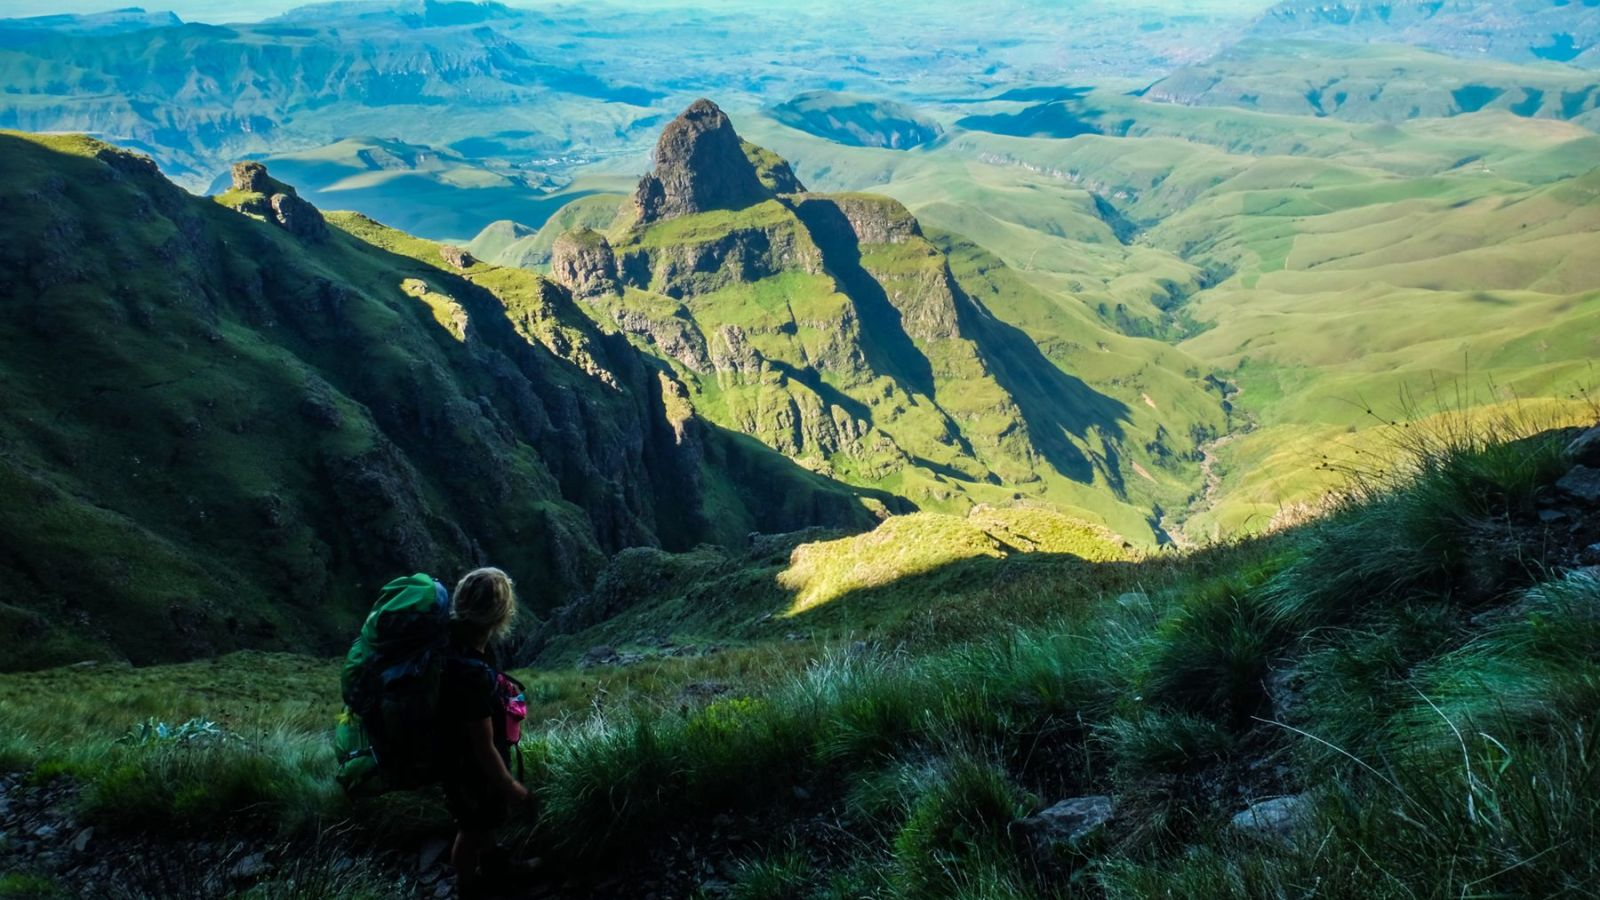 photo of the valley from the mountain plateau in the drakensberg mountains with hiker in the foreground